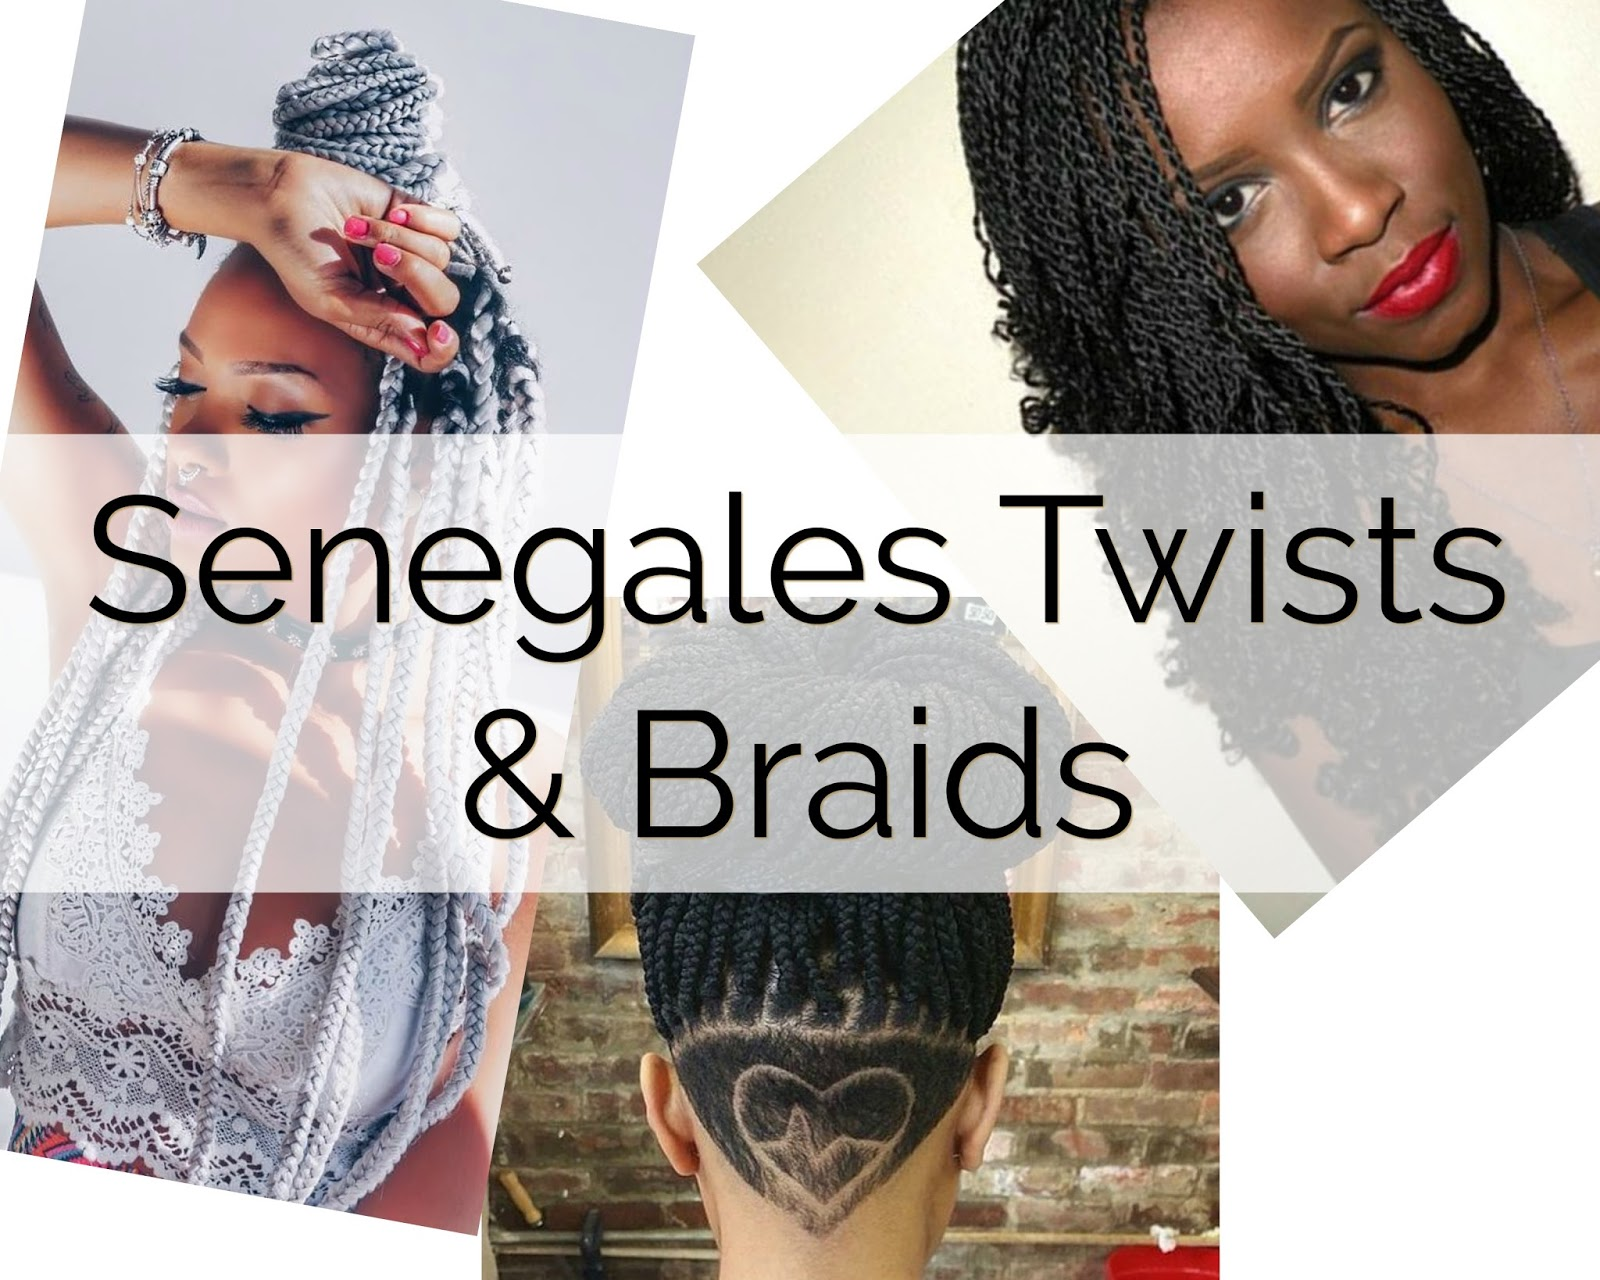 out the best transitioning hairstyles for natural hair newbies!